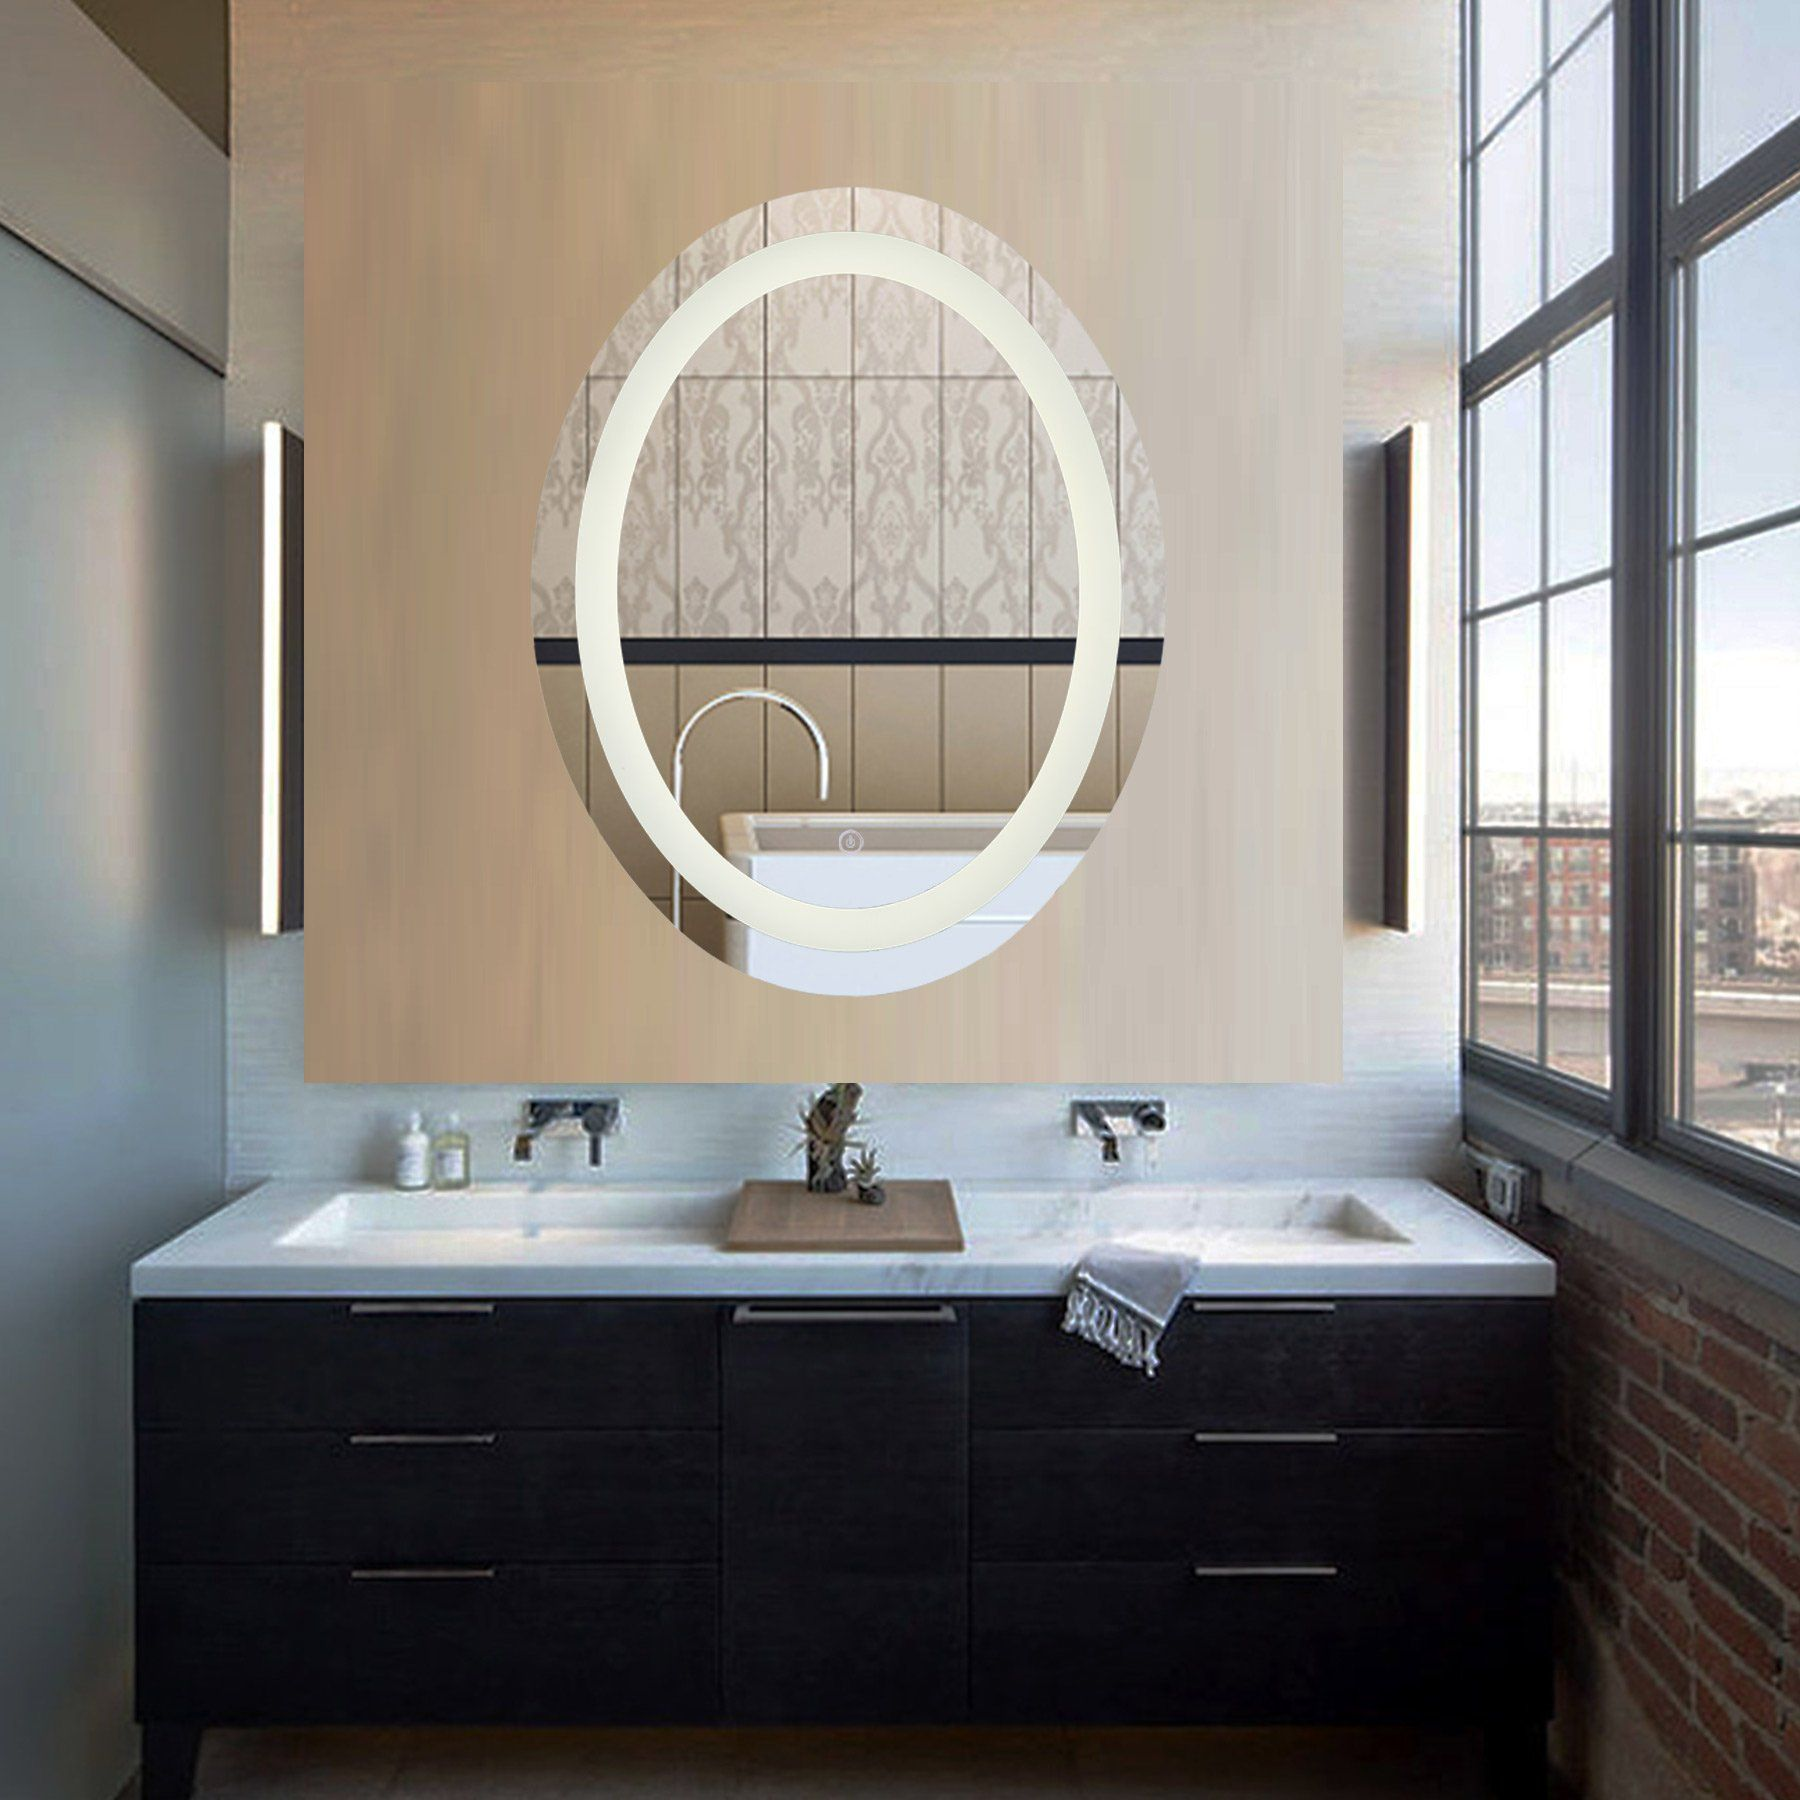 Coz Dimmable Oval Led Lighted Bathroom Mirror Modern Wall Mirror